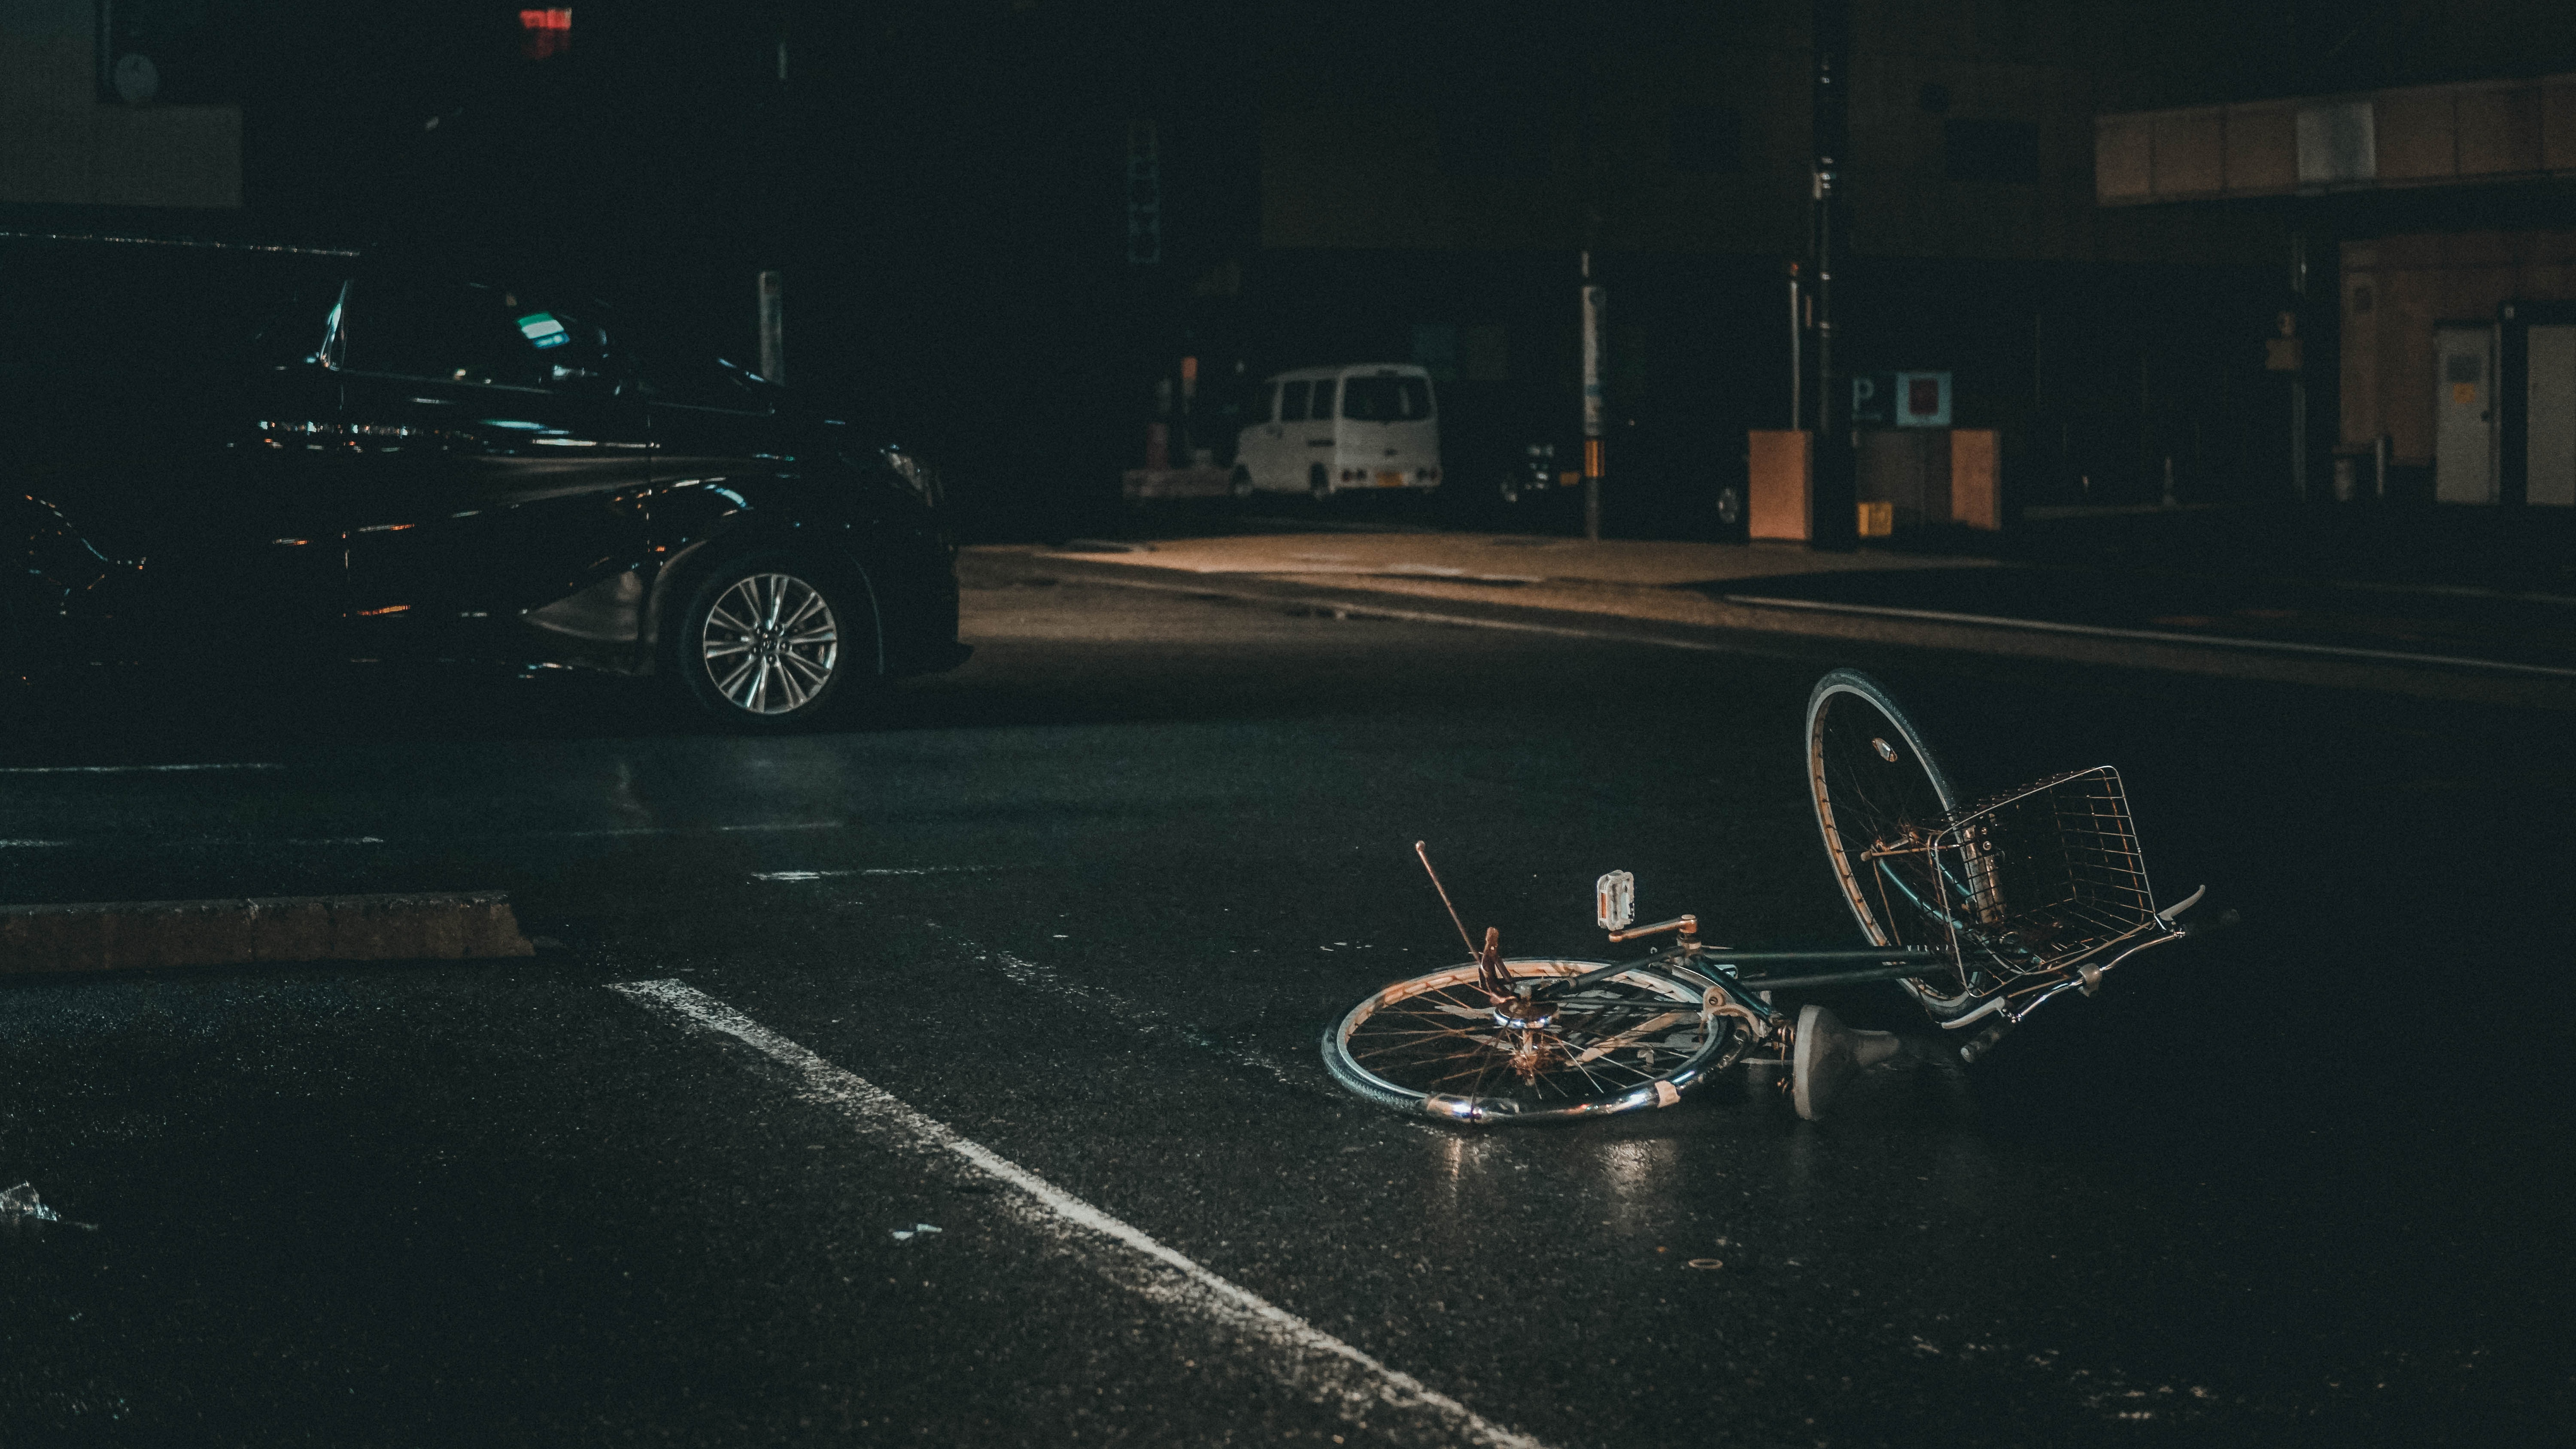 Do You Need a Lawyer After You've Been in a Bike Accident?